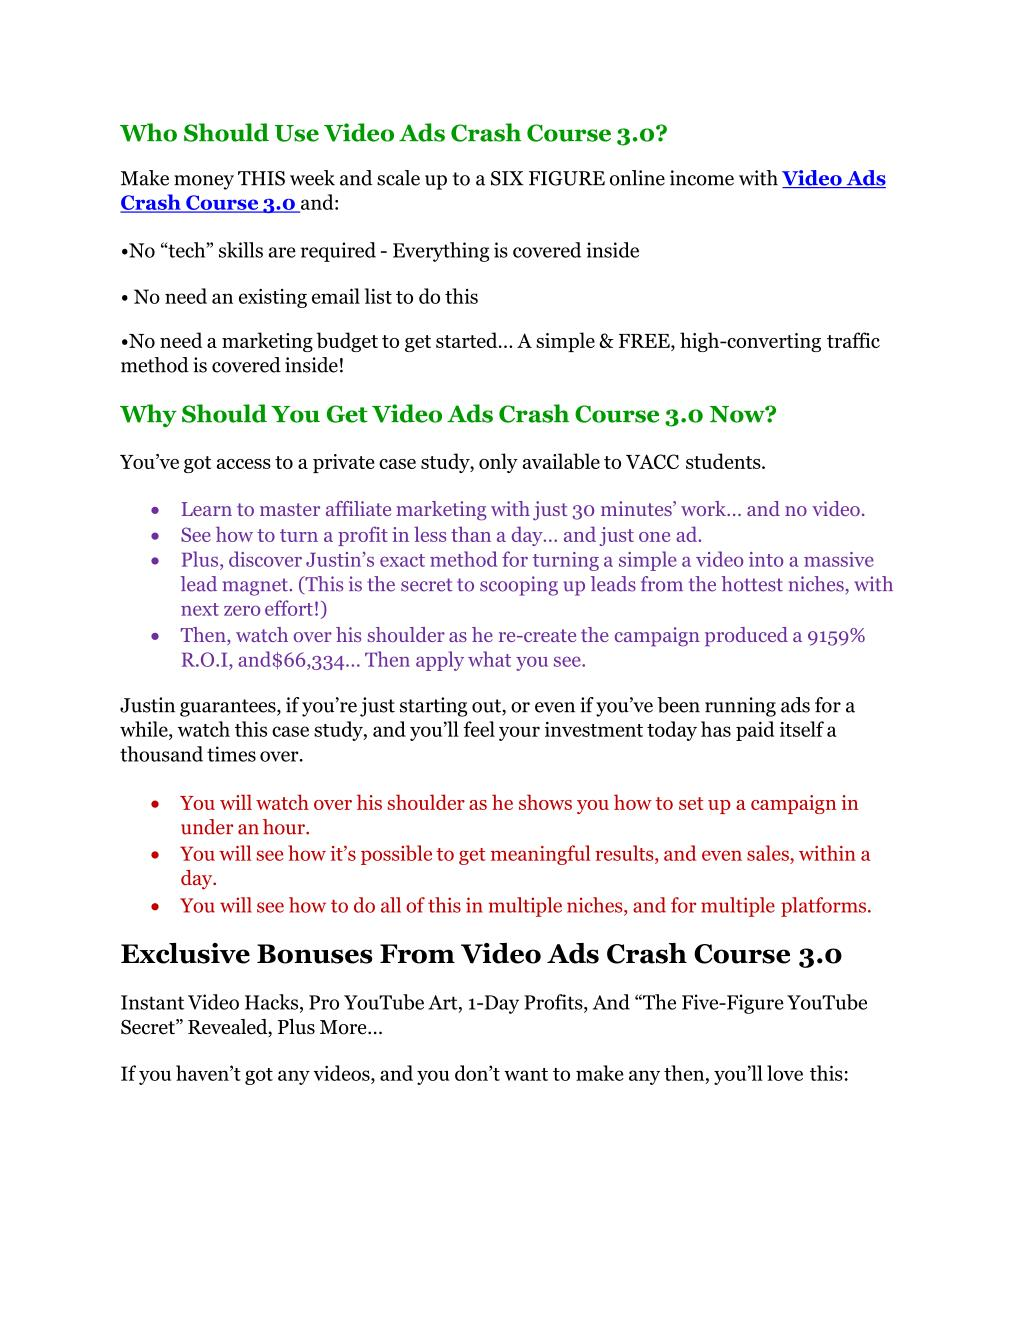 PPT - Video Ads Crash Course 3 Review-TRUST about Video Ads